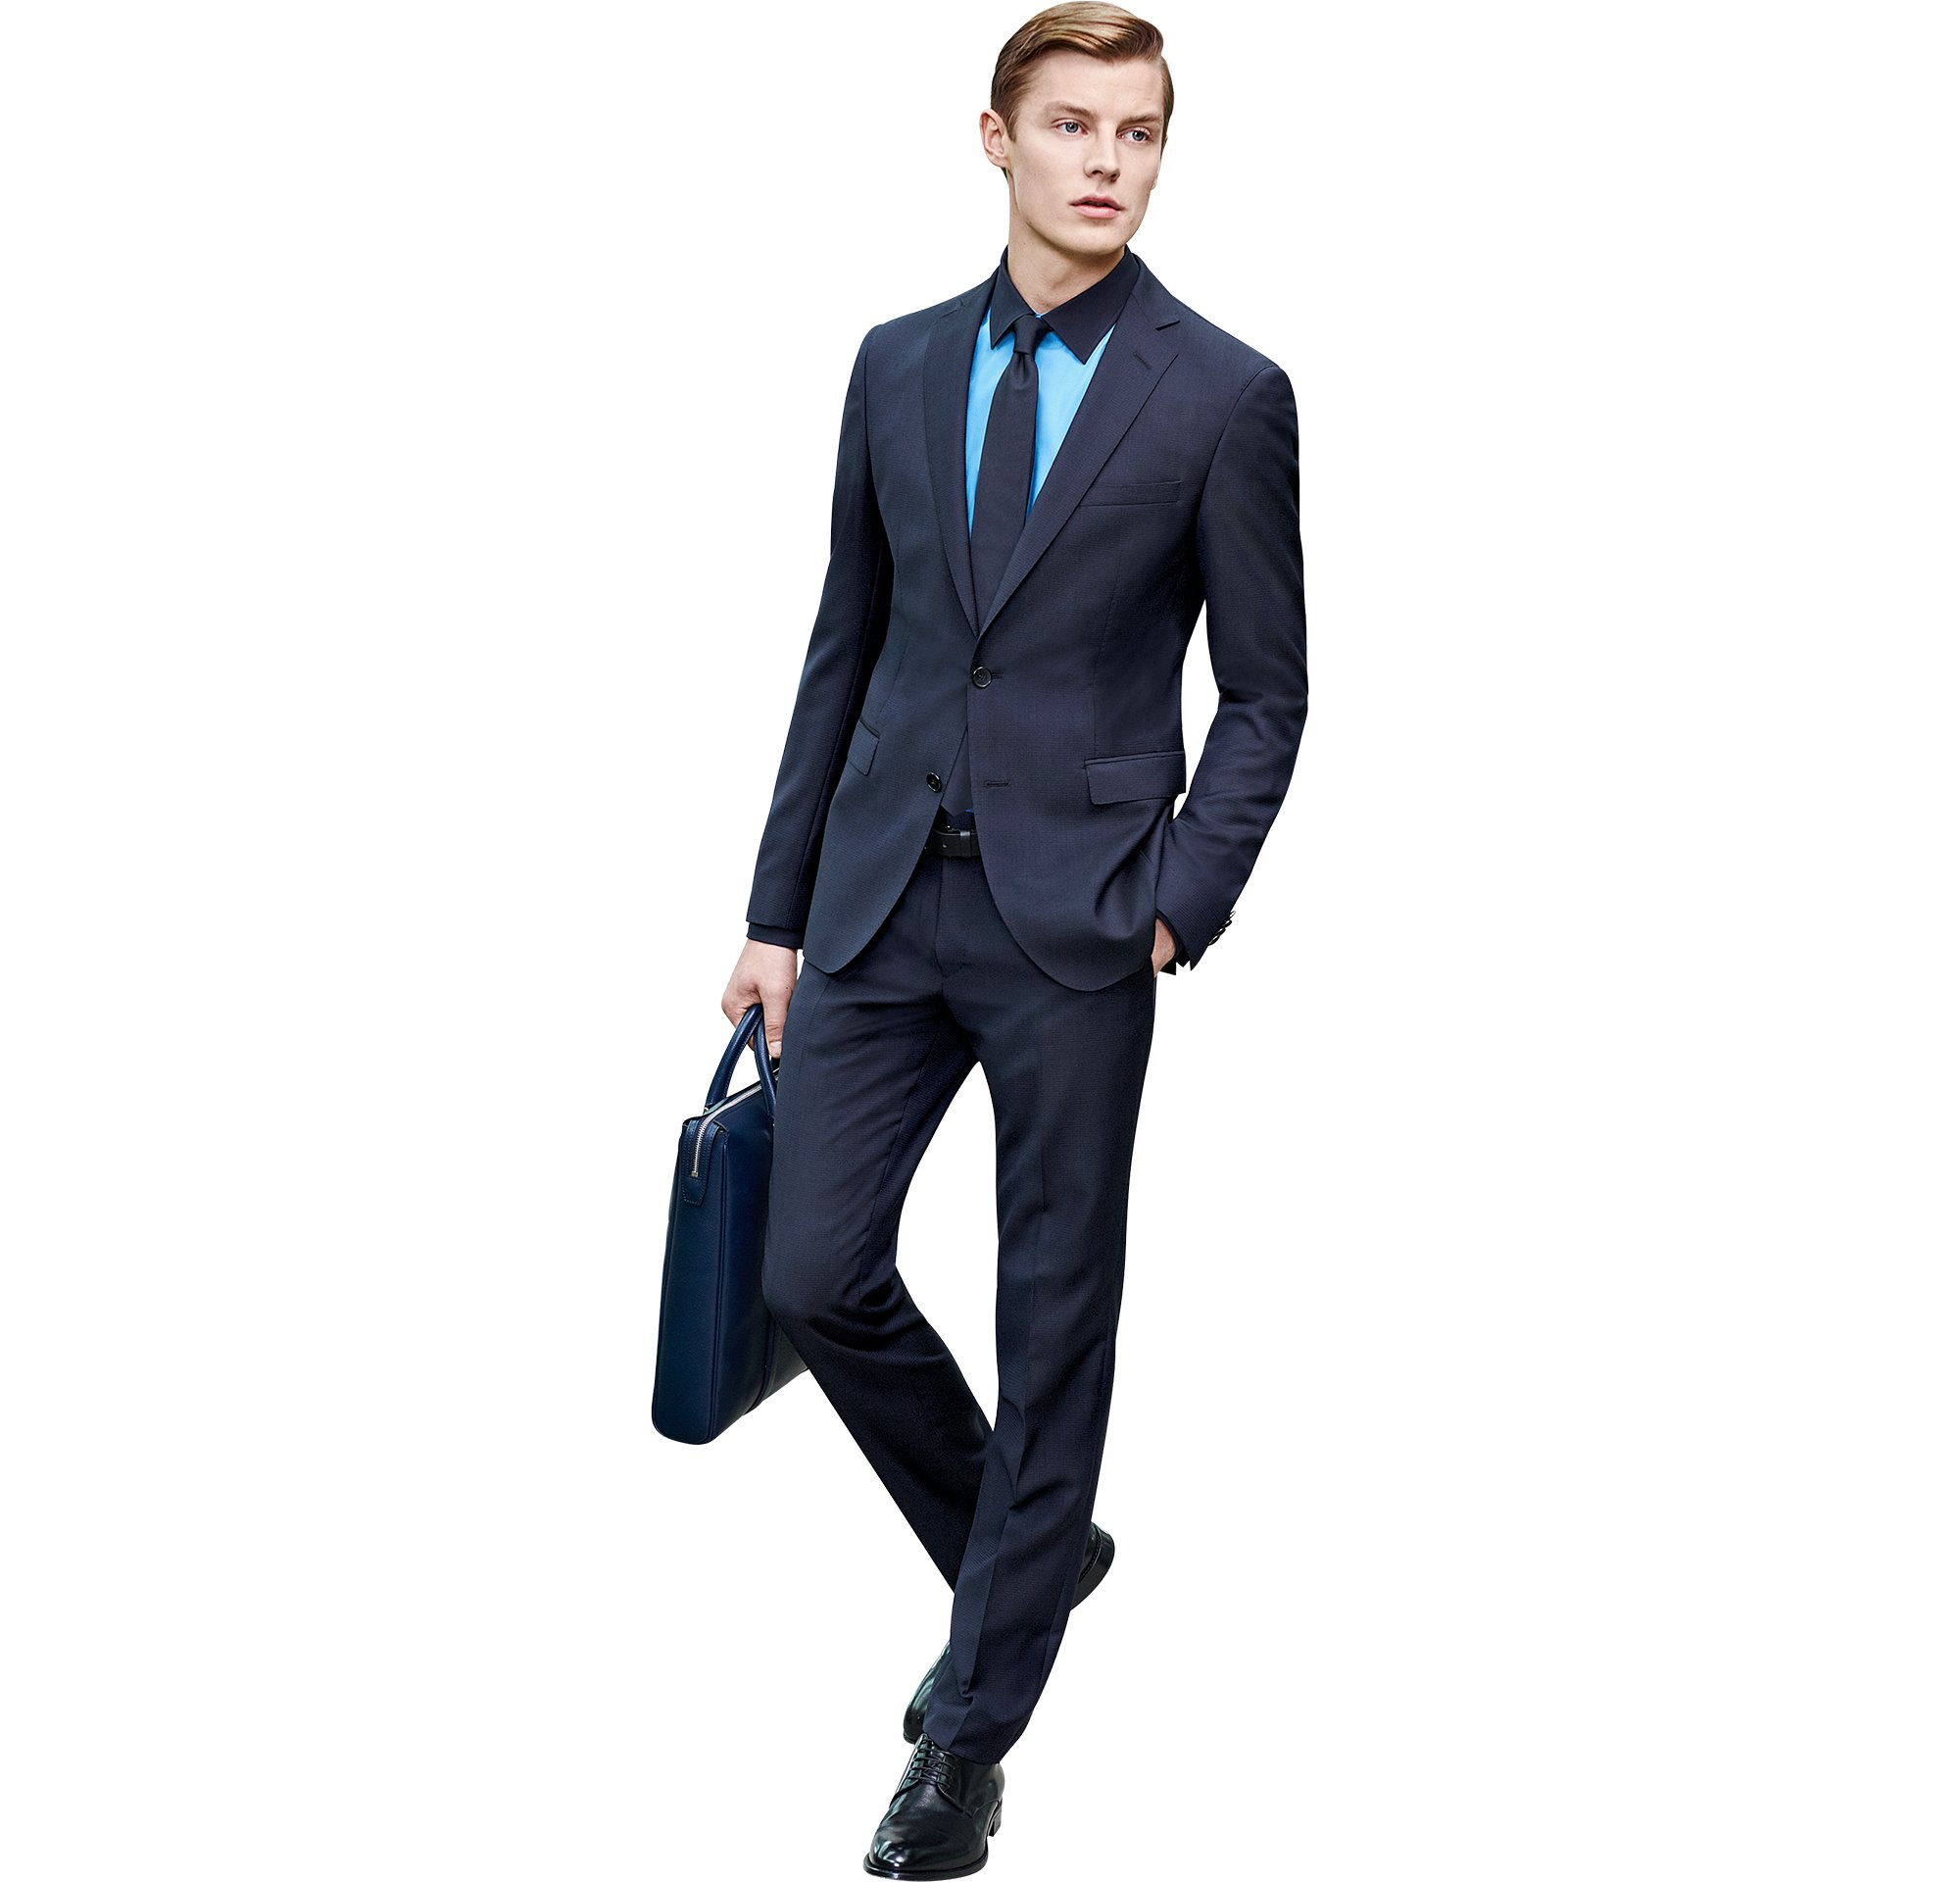 Blue suit over blue shirt with blue tie, bag and shoes by BOSS